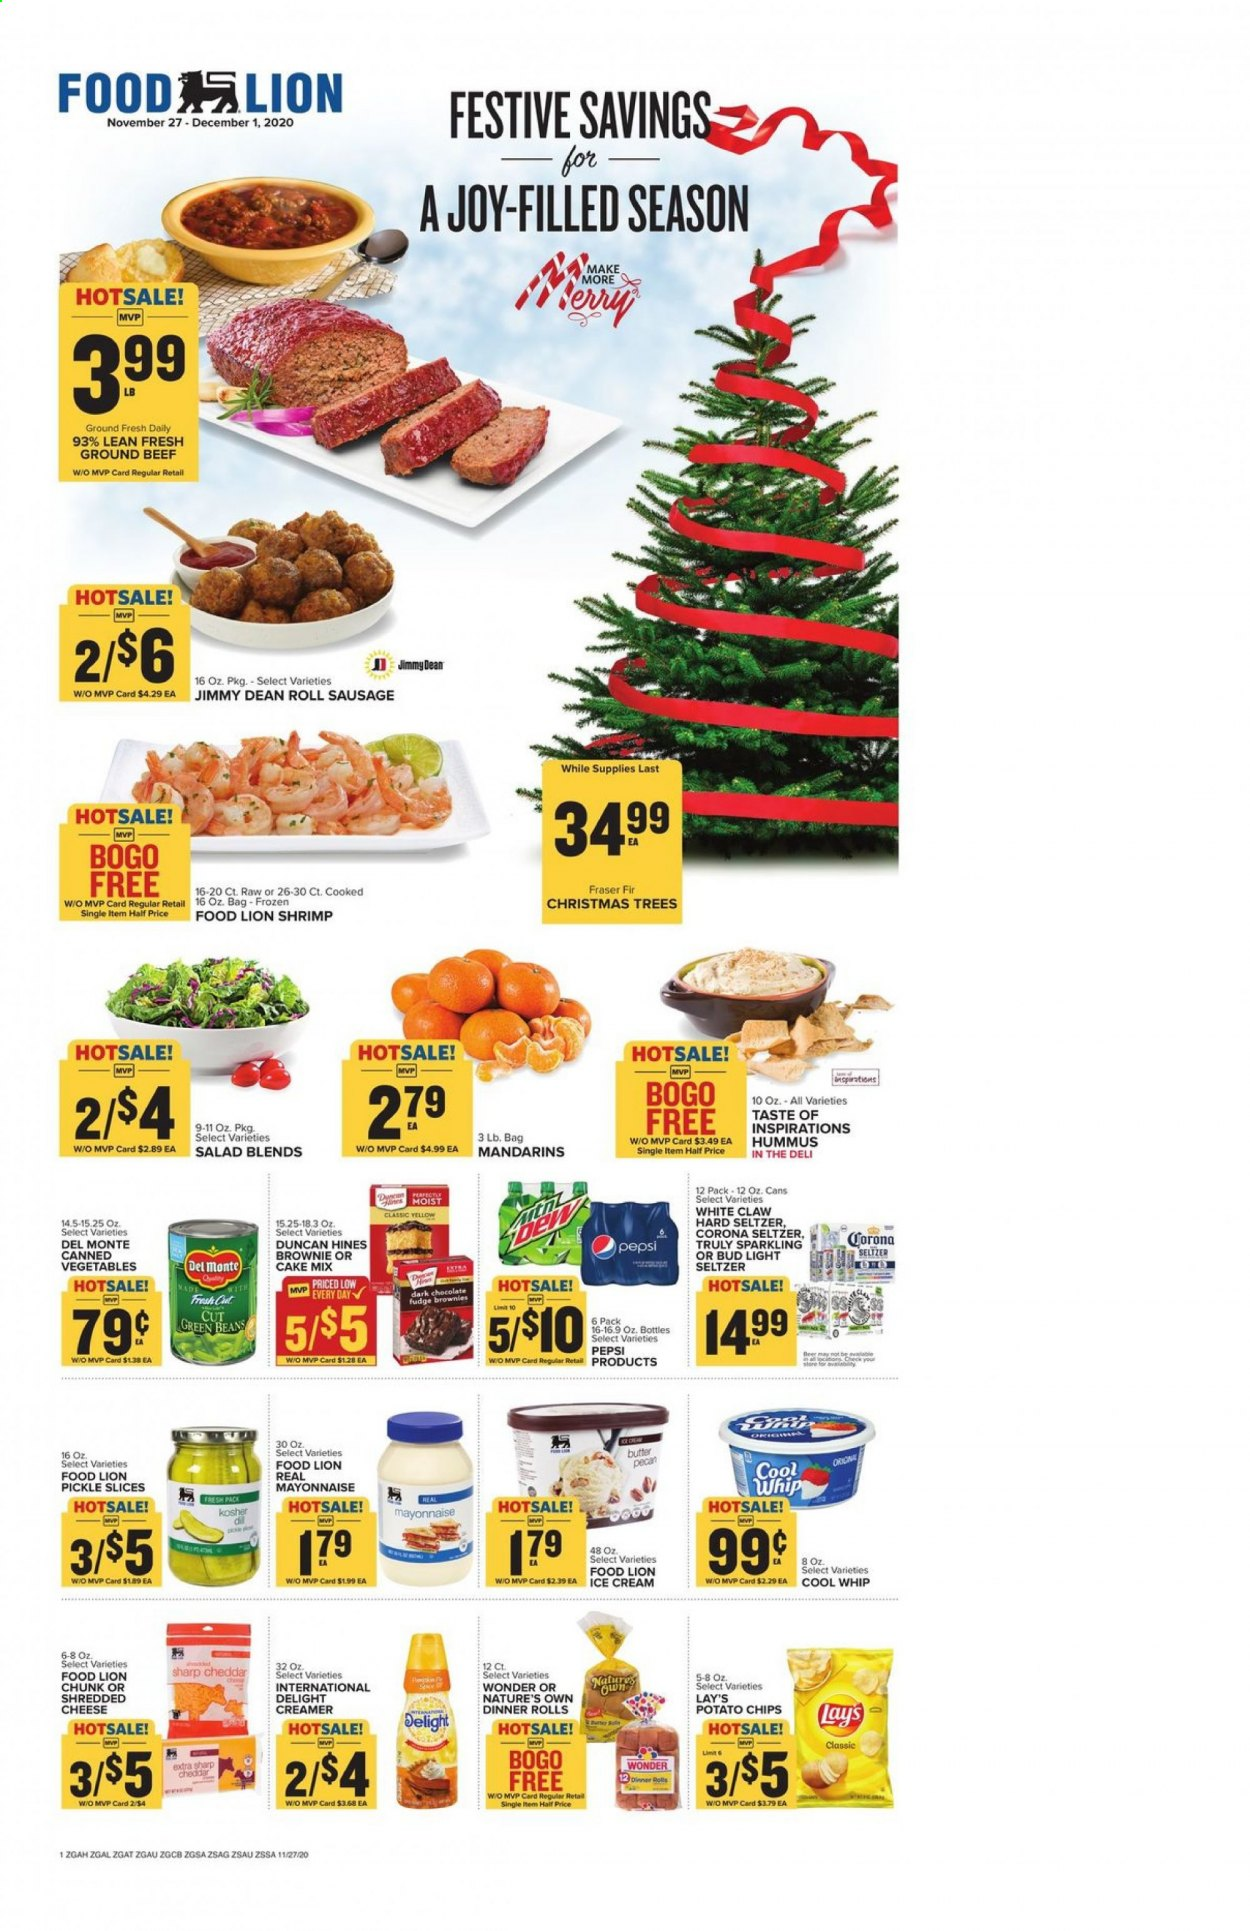 Food Lion Flyer - 11.27.2020 - 12.01.2020 - Sales products - beans, beef meat, Beer, bittersweet chocolate, butter, cake mix, Cool Whip, frozen, fudge, green beans, ground beef, mayonnaise, sausage, seltzer, Sharp, shredded cheese, hummus, christmas tree, ice cream, potato chips, cheddar, Pepsi, chips, chocolate, cheese, cake, canned vegetables, Vegetables, creamer, Bud Light, Lay's, salad, corona, brownie, cool, shrimps, vegetable. Page 1.